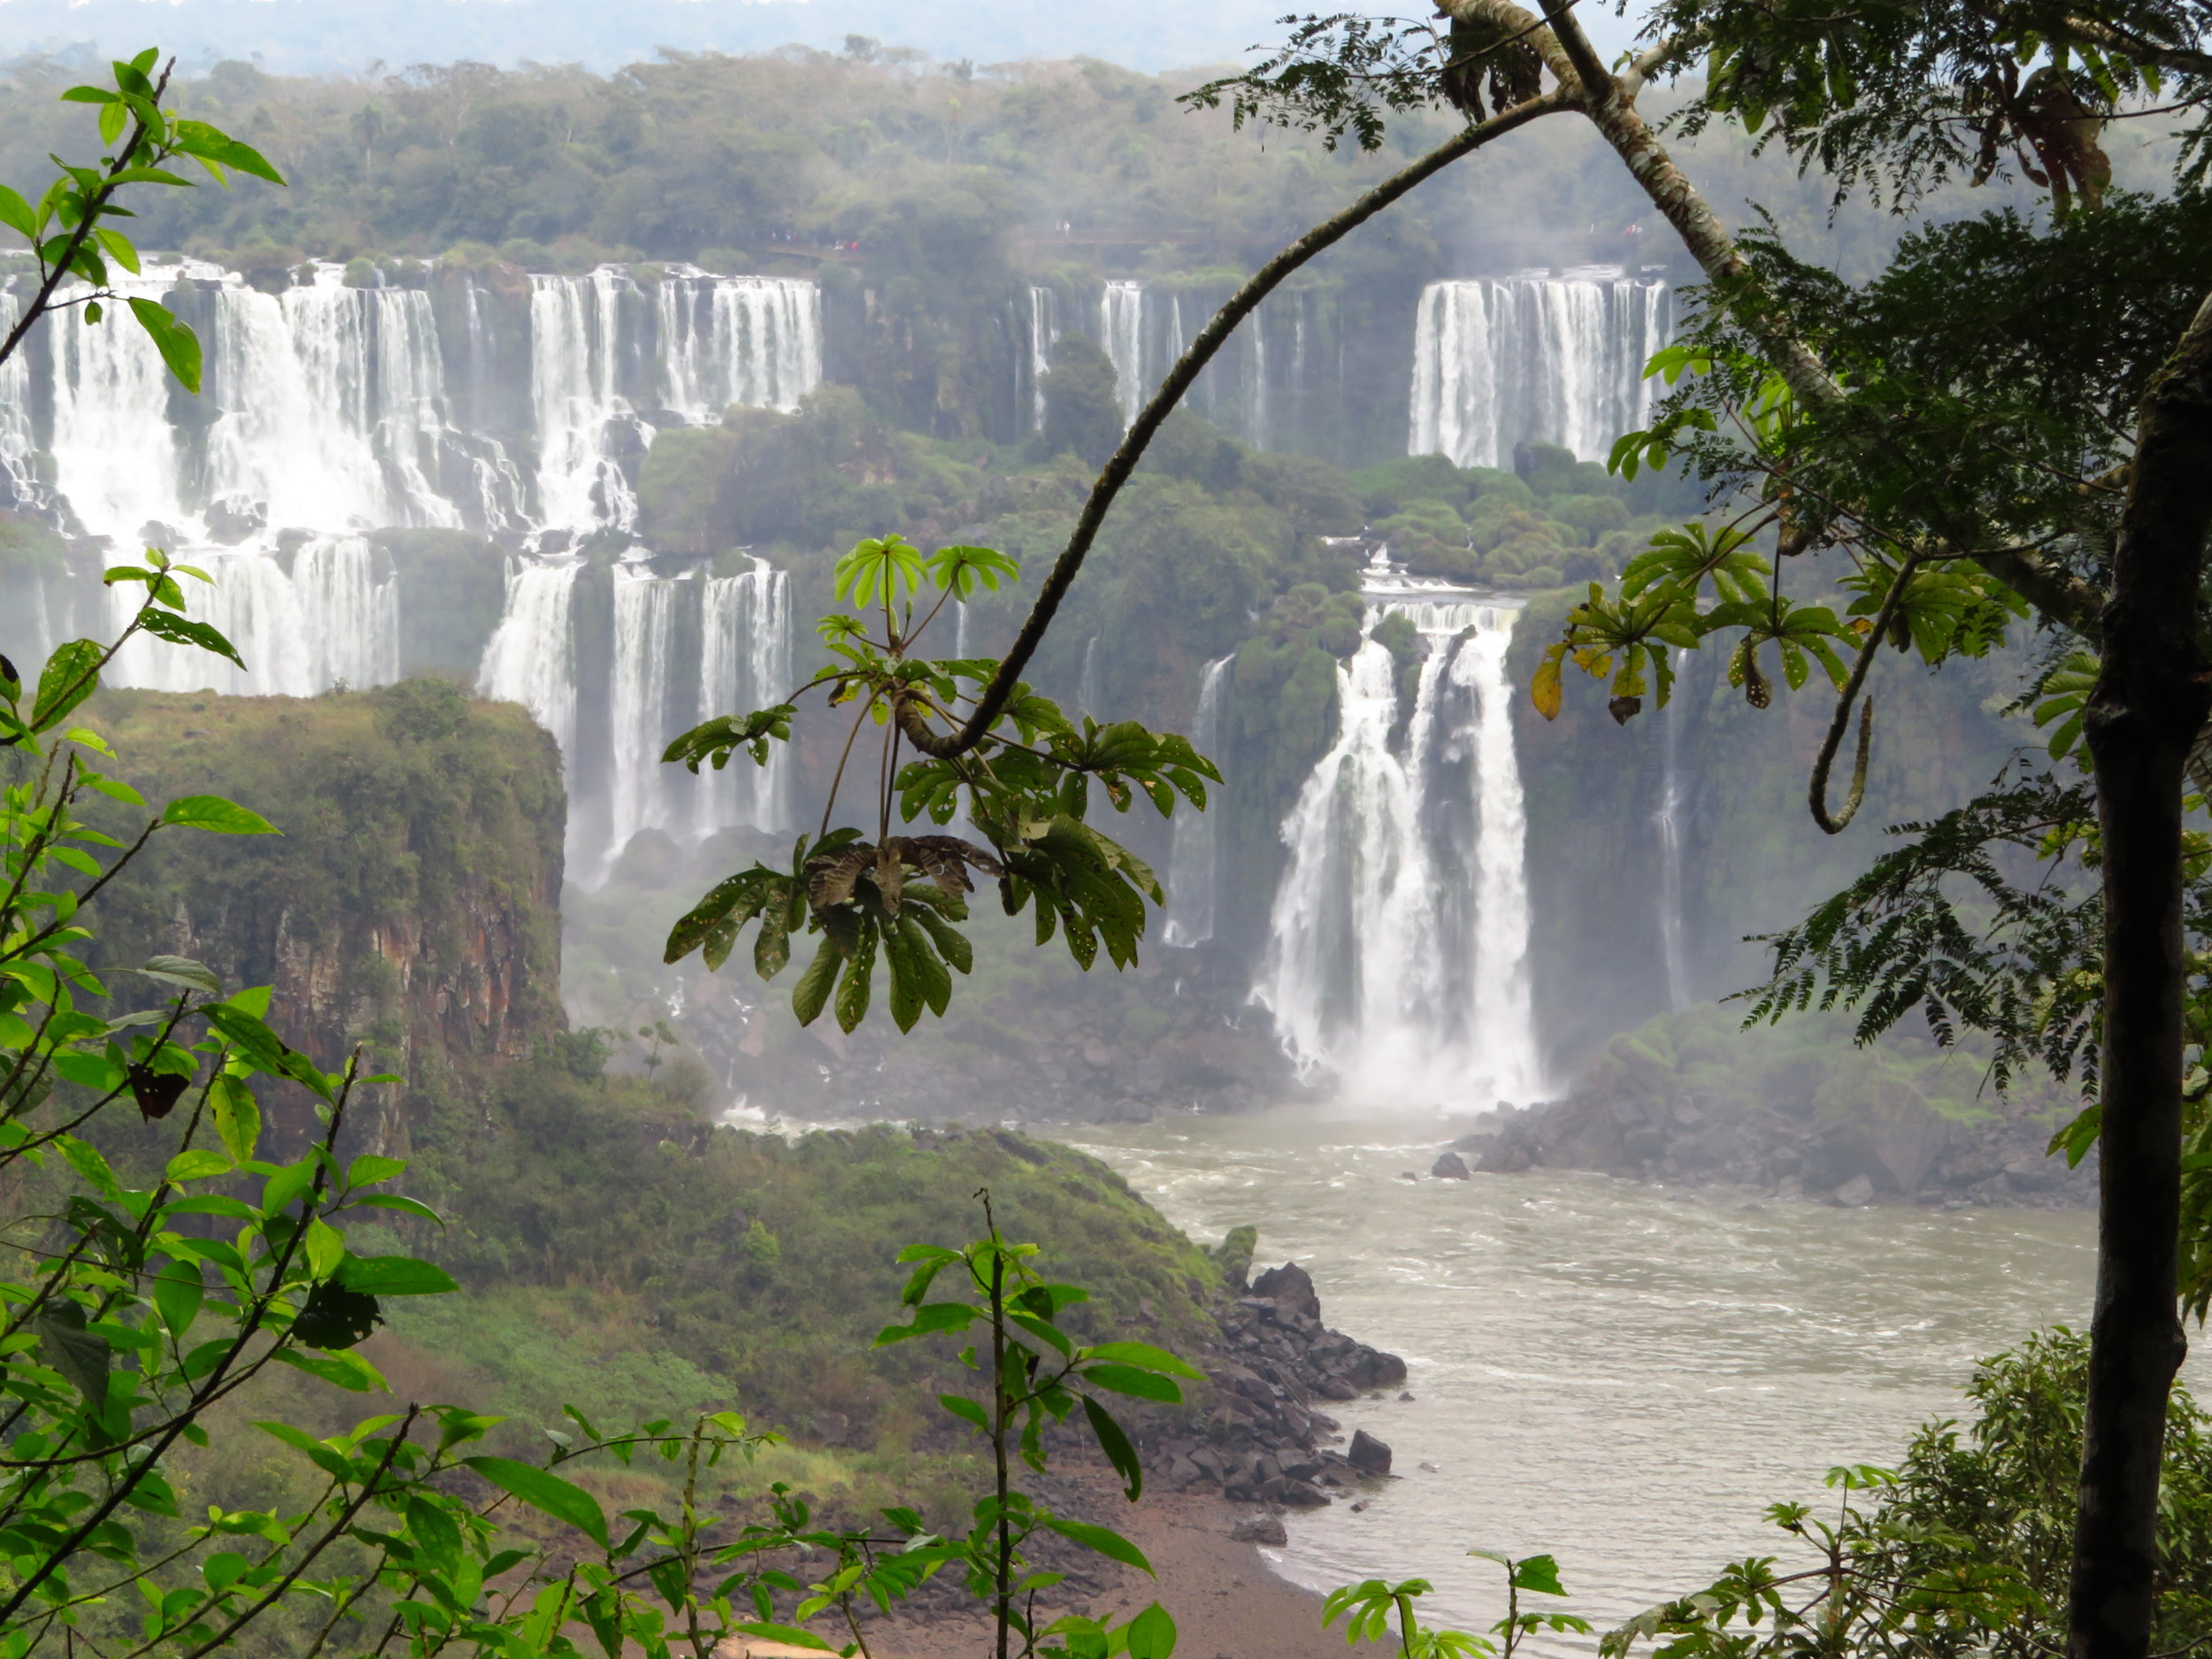 Cecropia trees line the banks of the Iguassu River as it pours over cliffs into the Atlantic Rainforest.